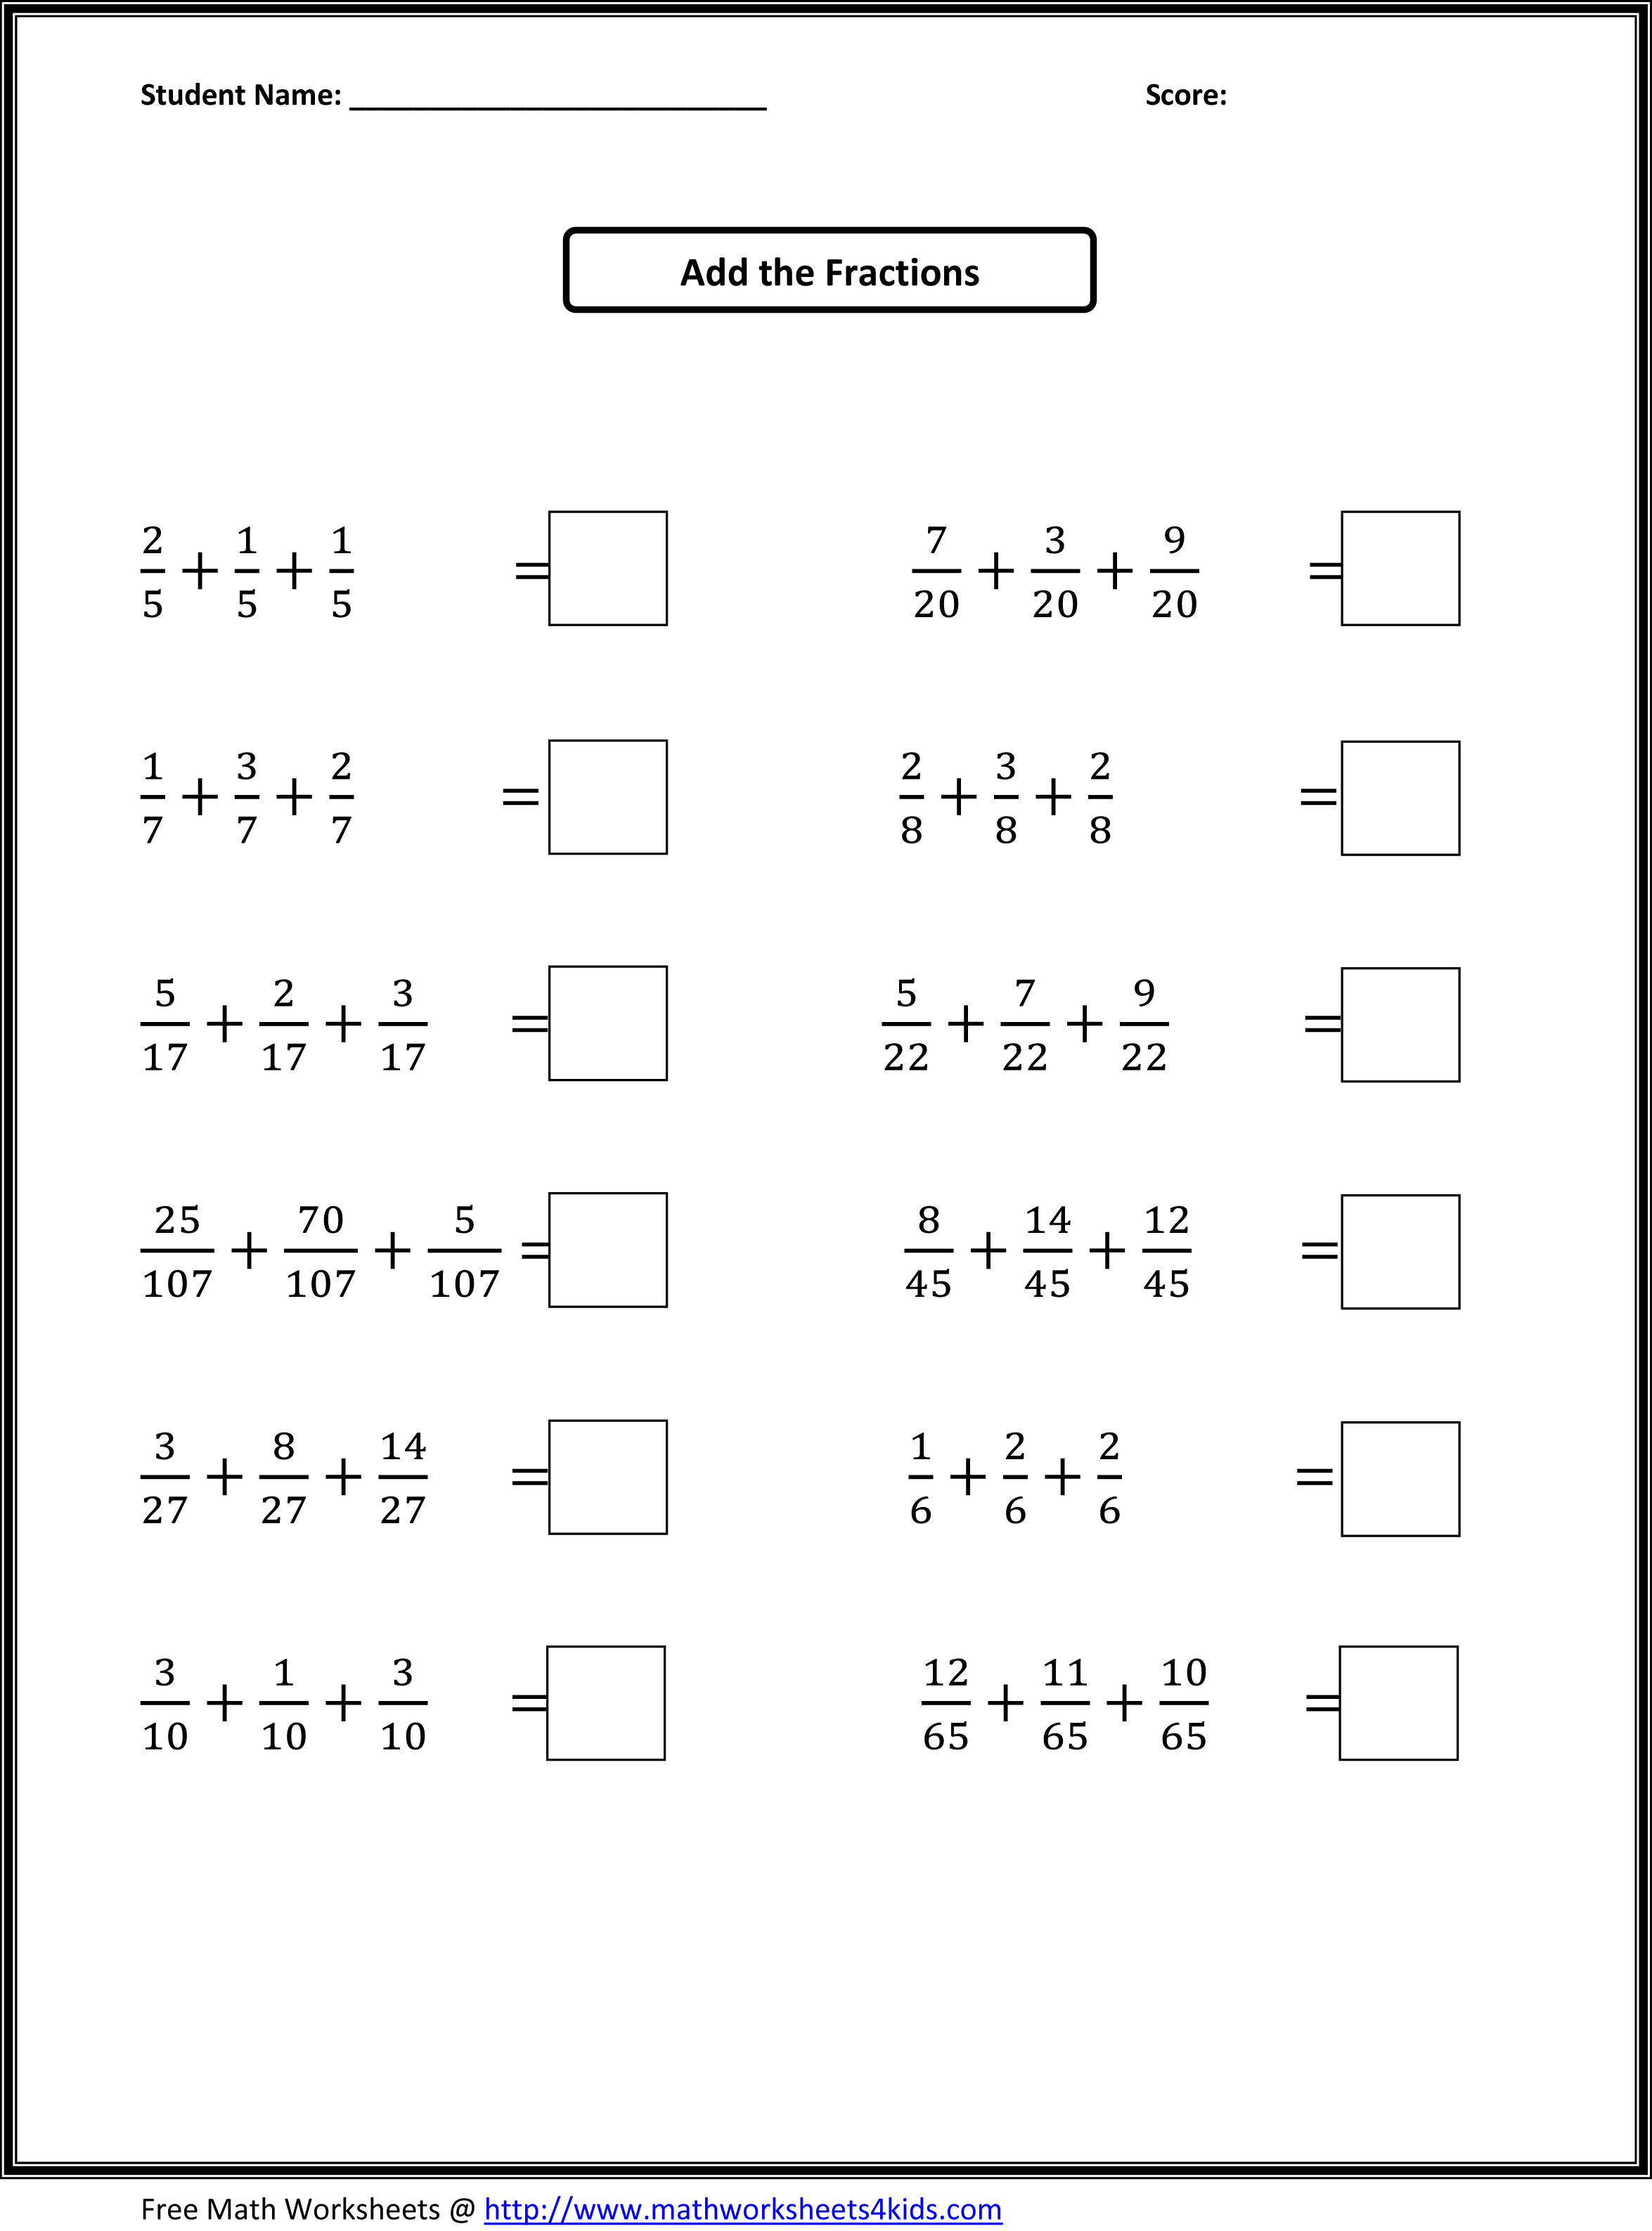 math worksheet : adding fractions worksheets 4th grade  khayav : Adding Fraction Worksheets